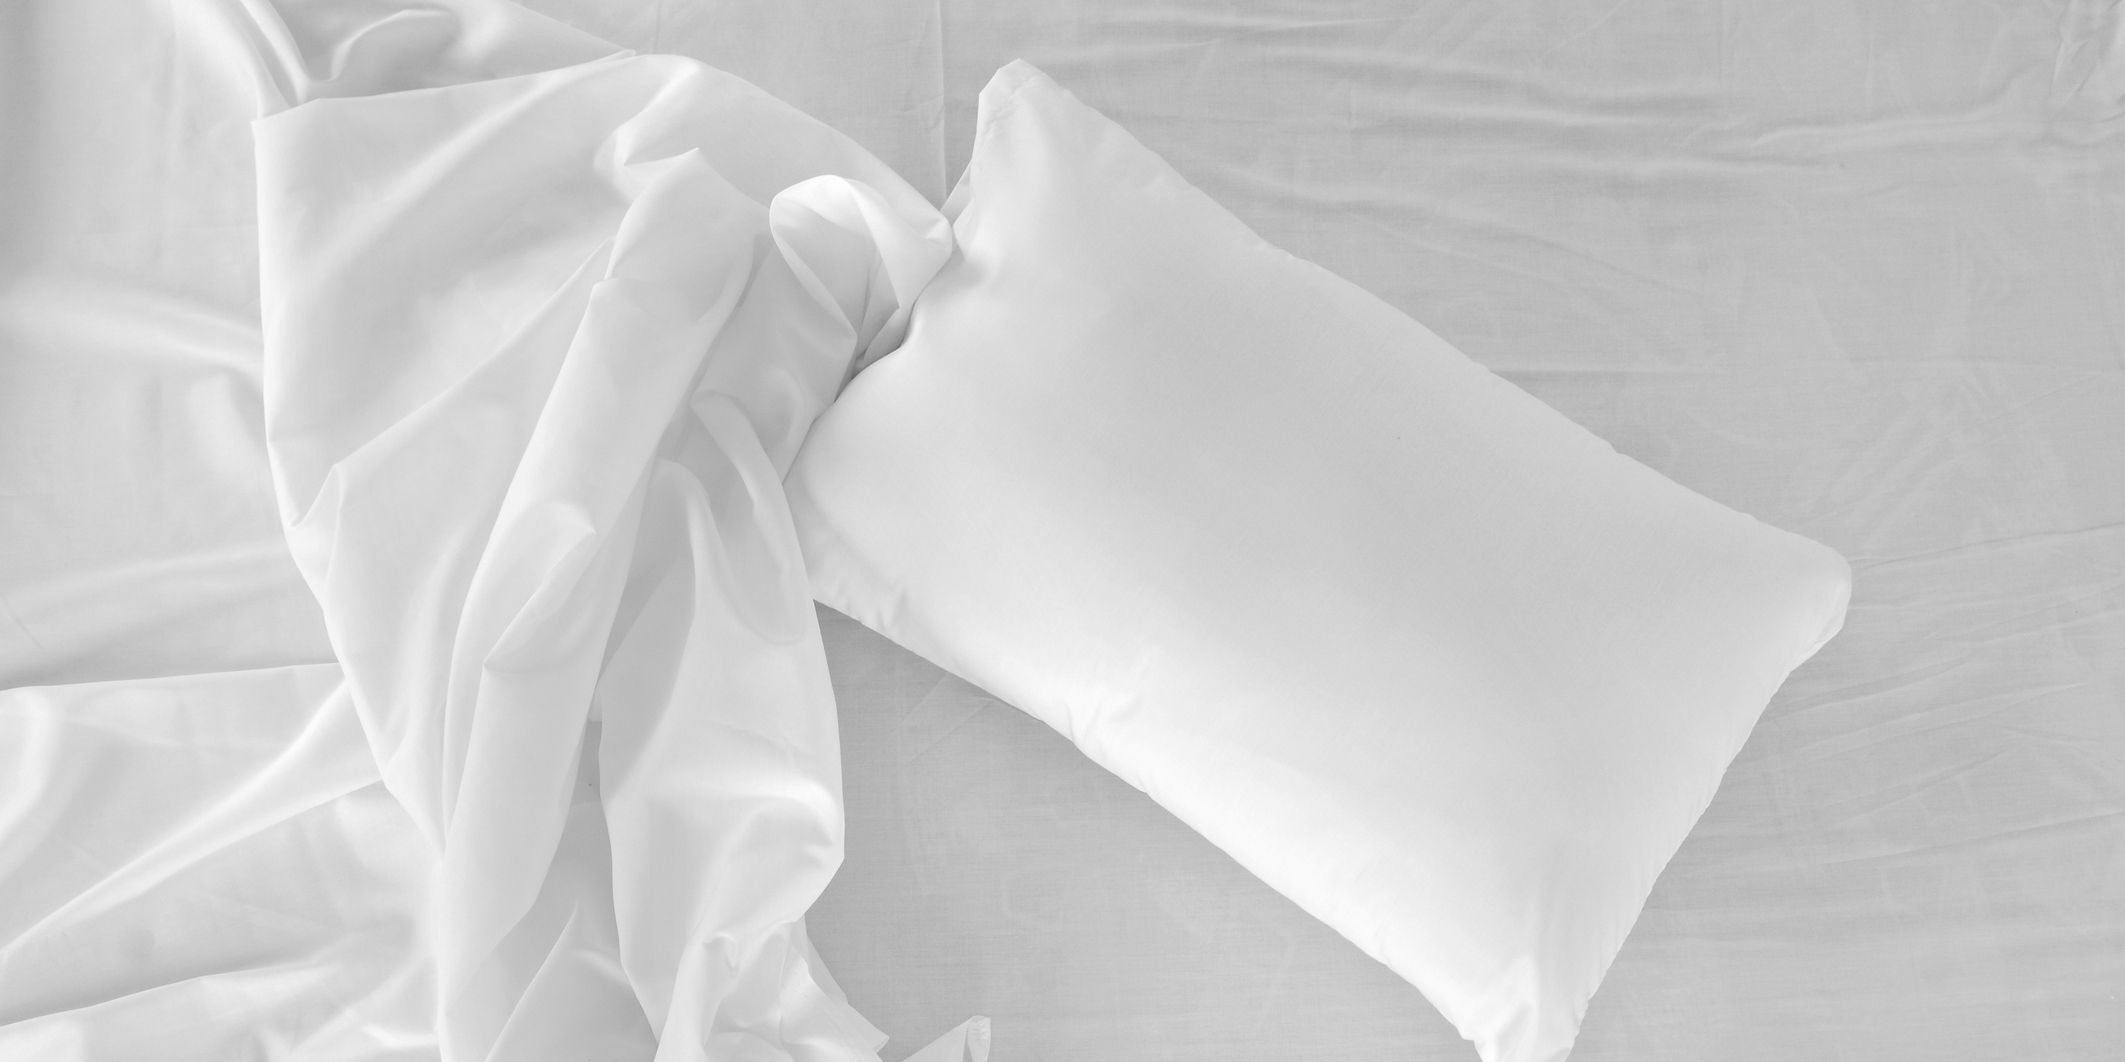 Bird's eye view of a white, unmade bed